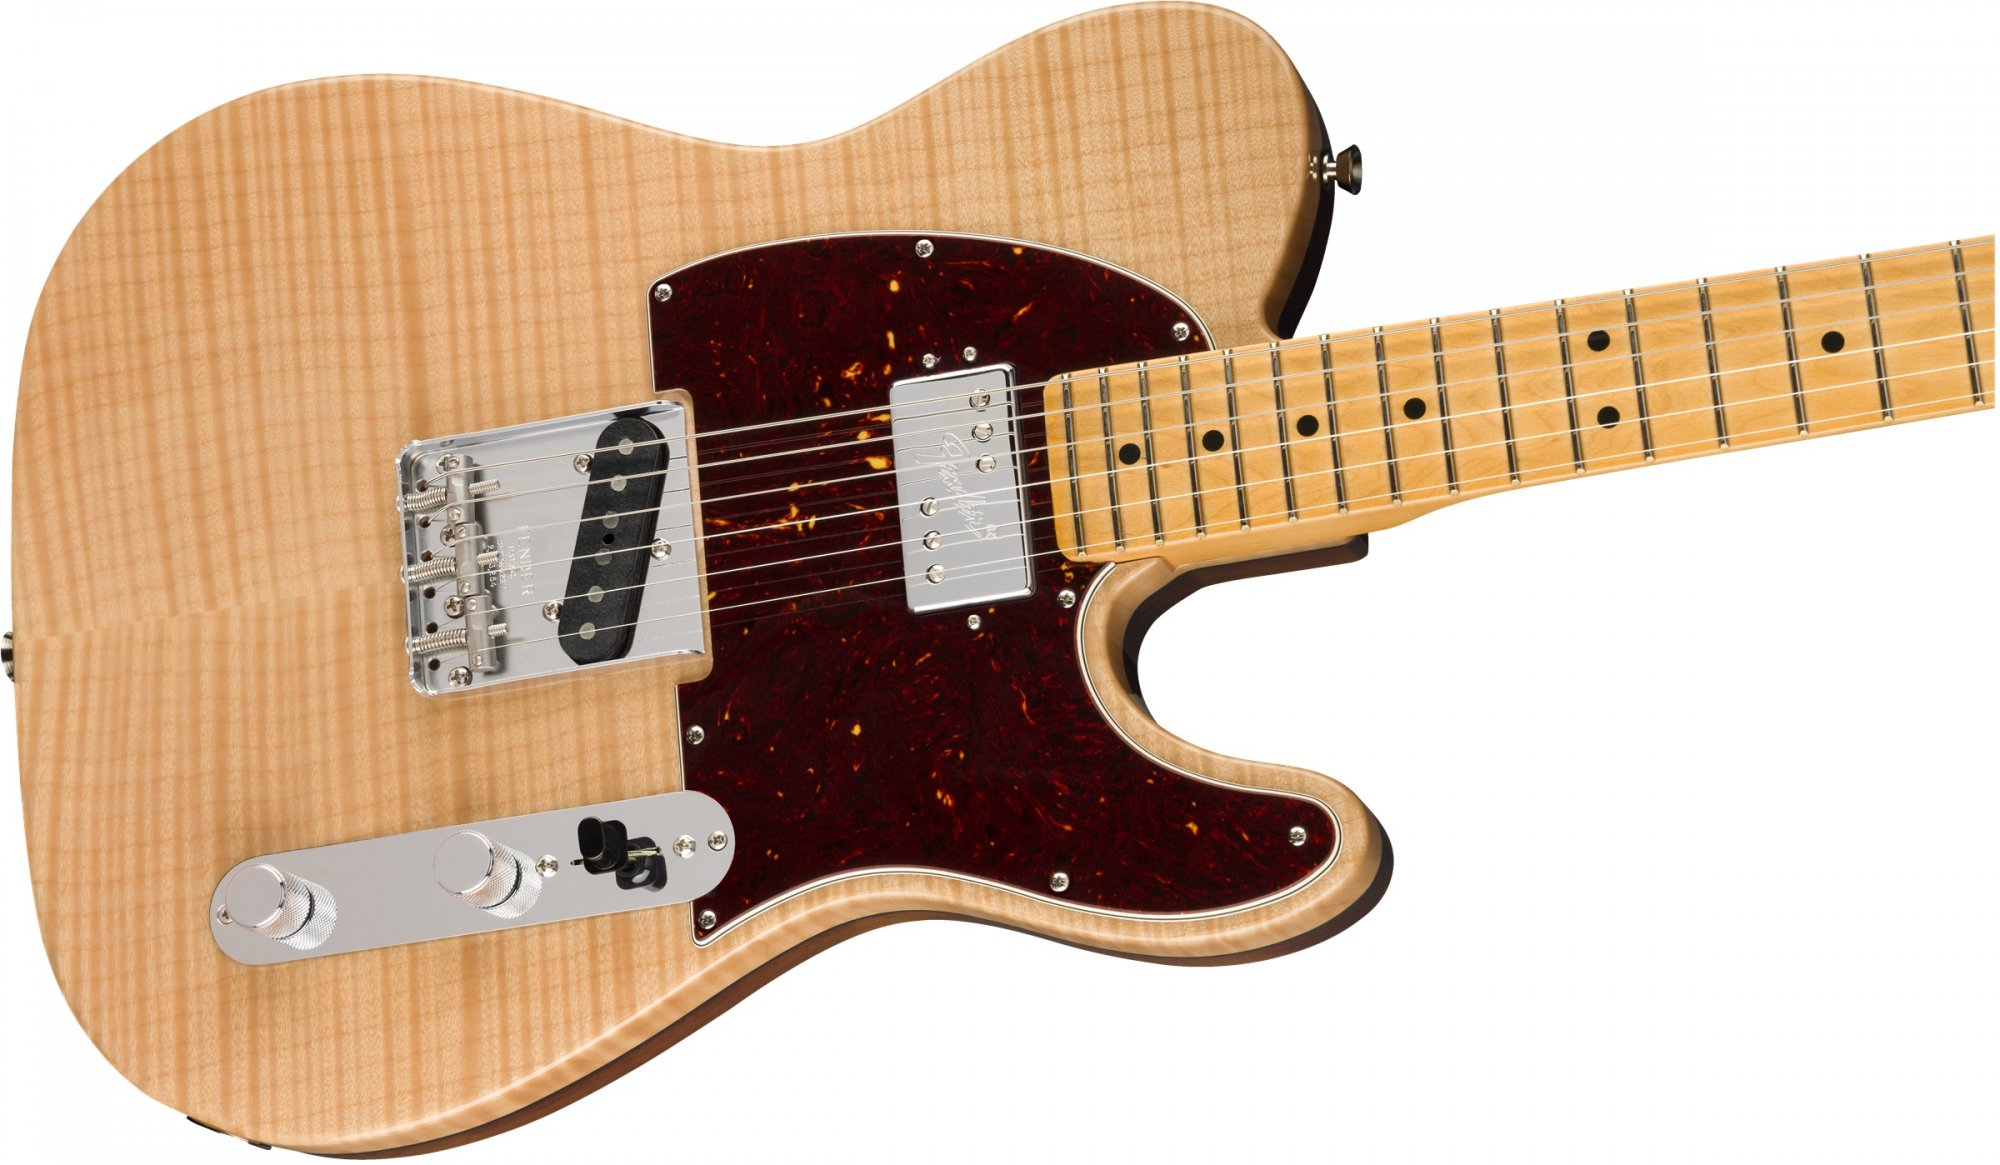 Fender Rarities Chambered Telecaster Flame Maple Top, Maple Neck, Natural